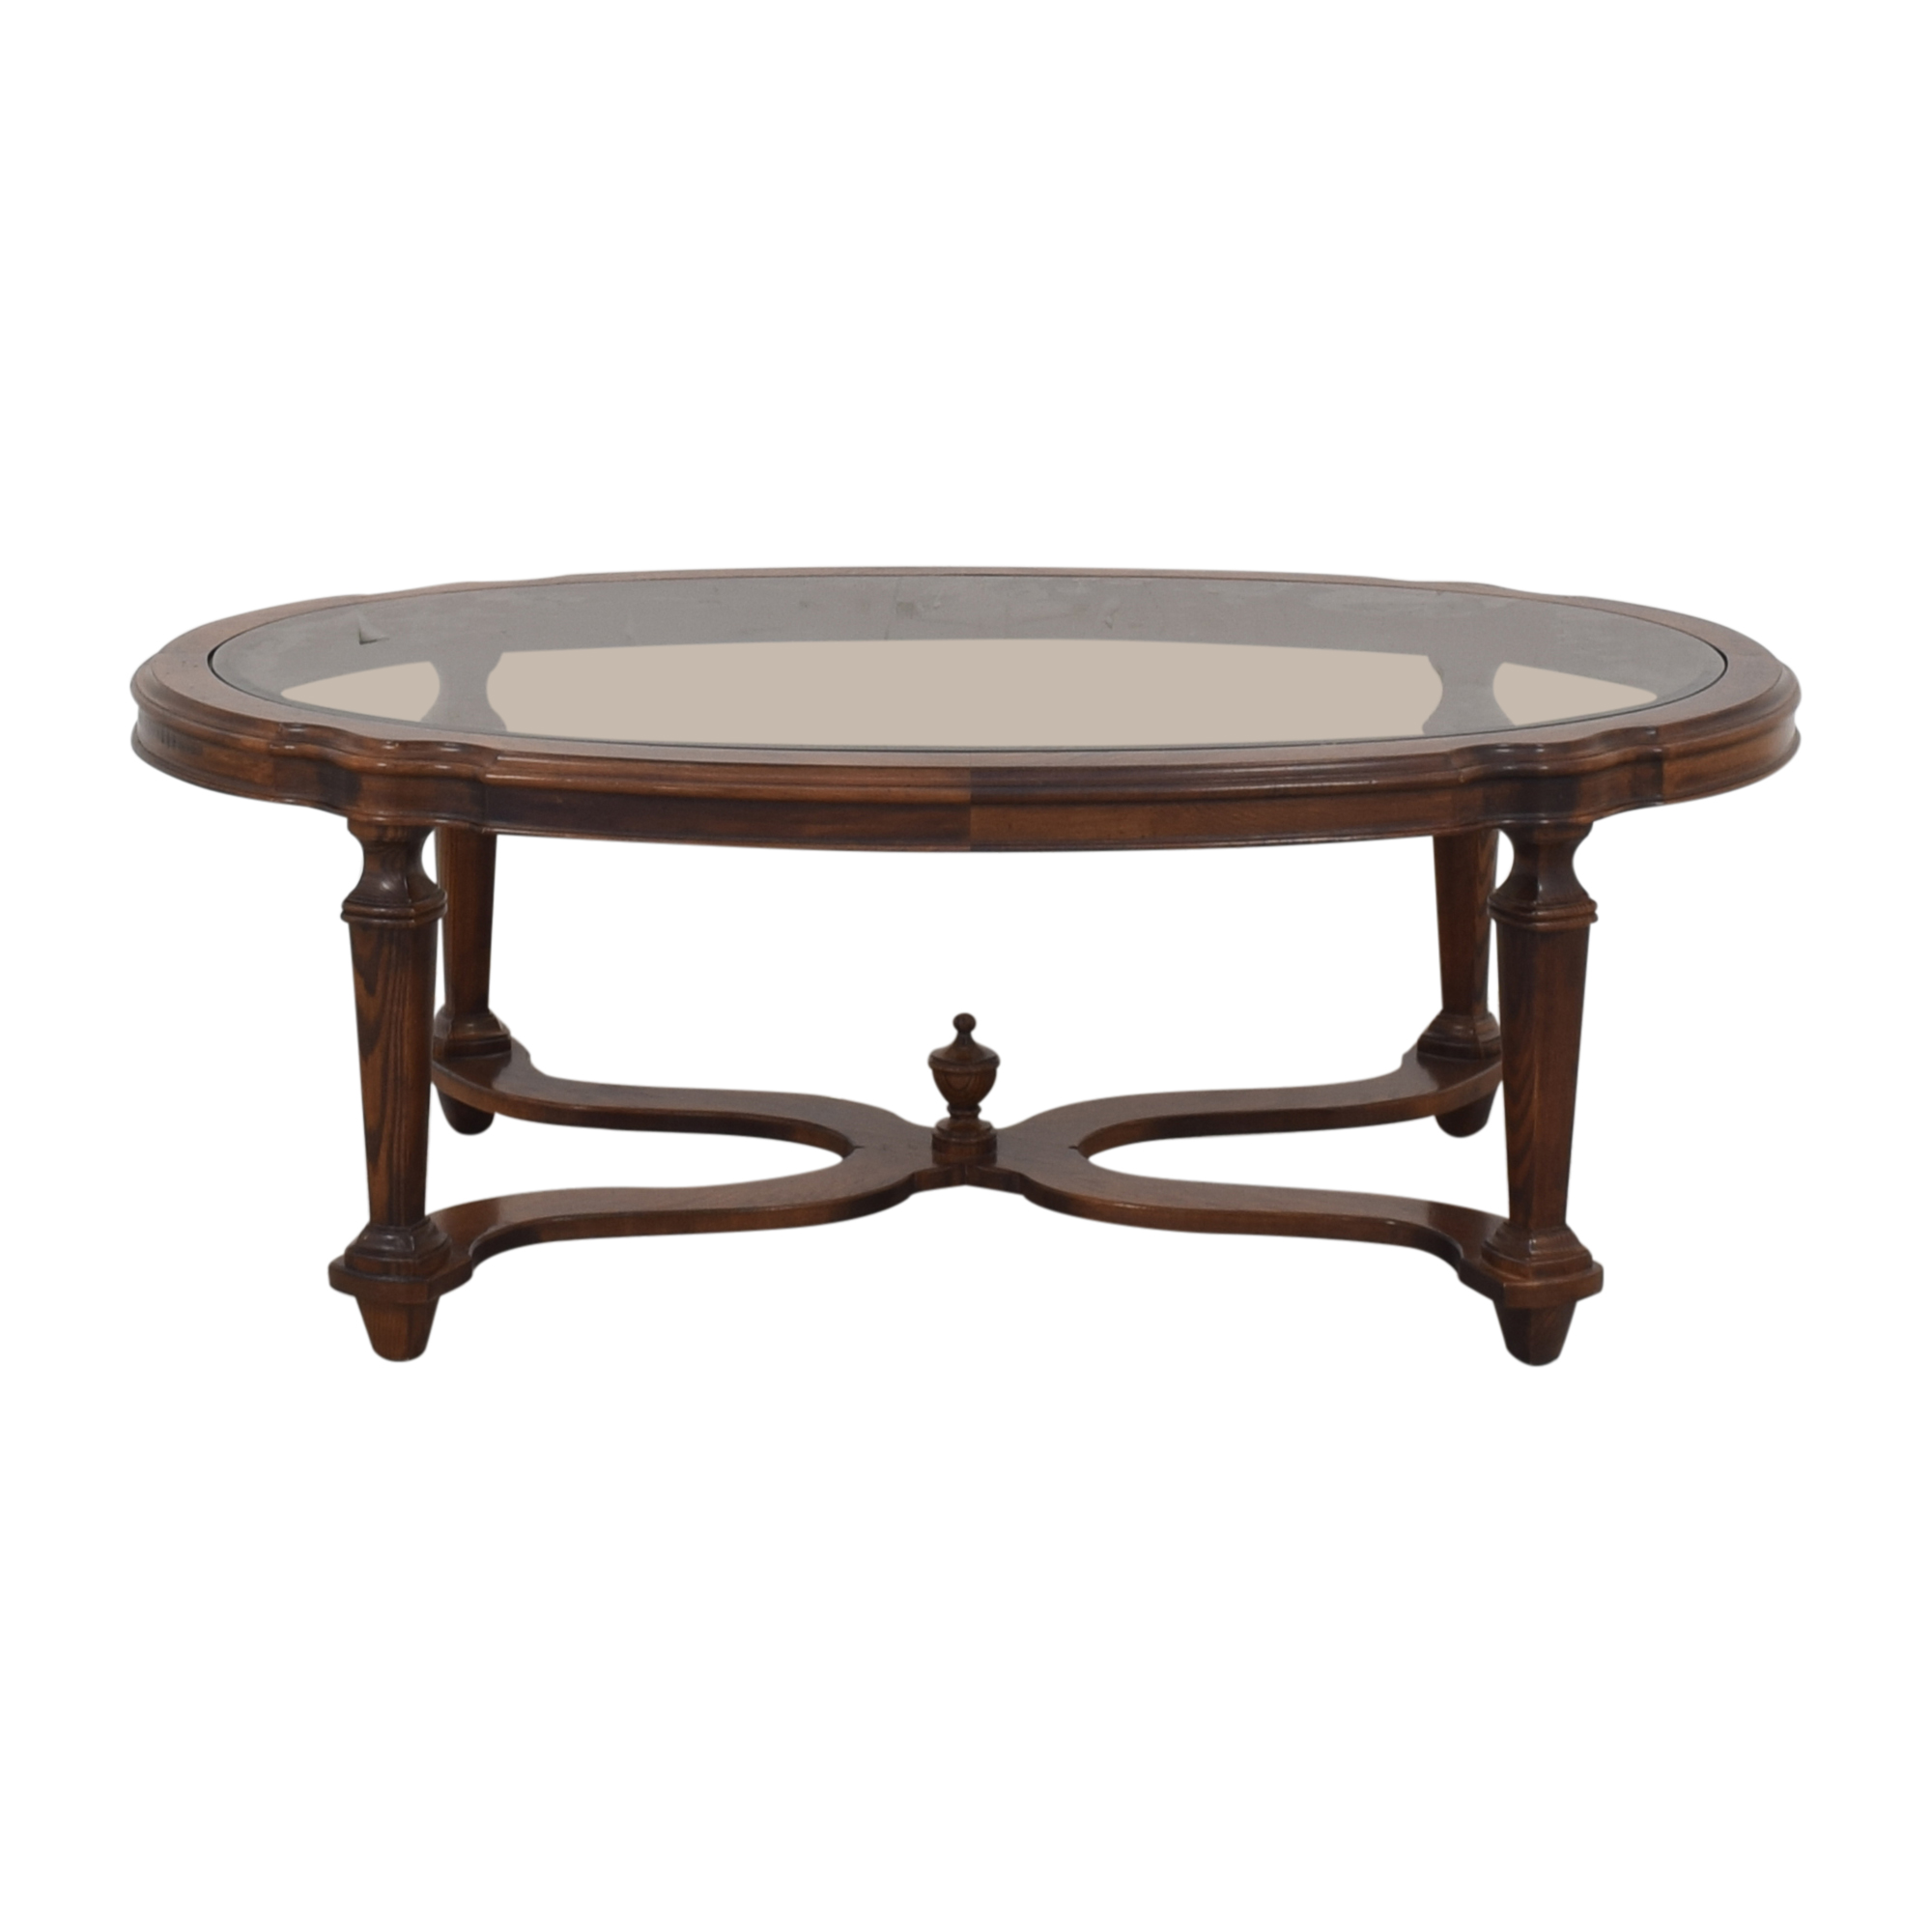 Ethan Allen Ethan Allen Vintage Coffee Table ma